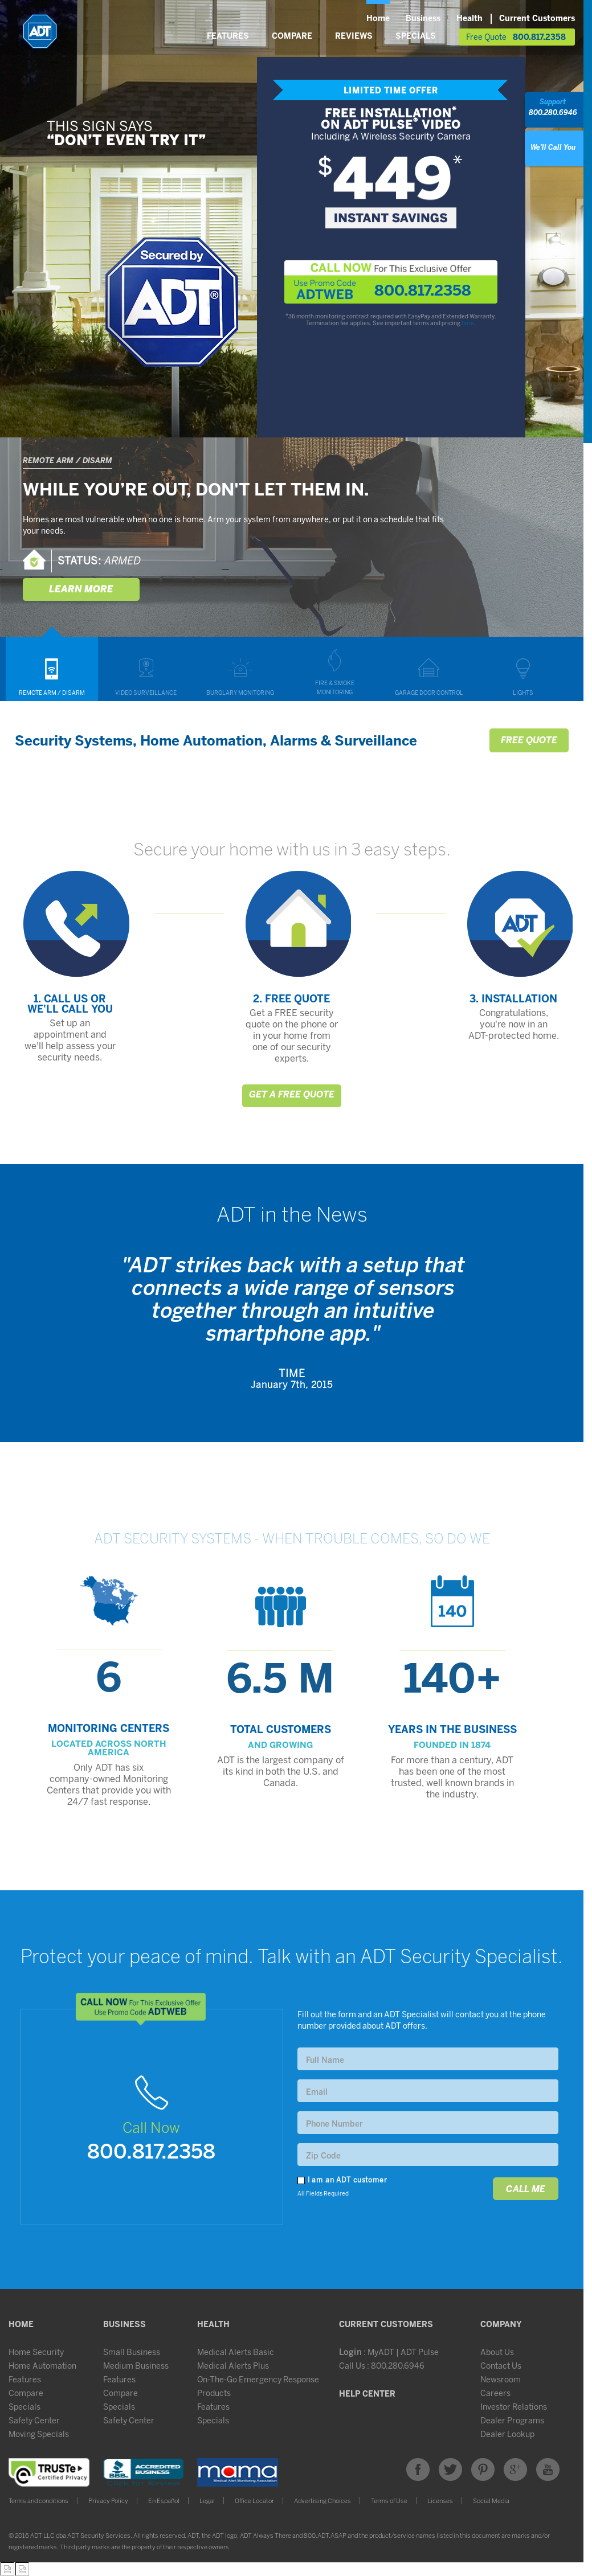 Adt Quote Adt Revenue Number Of Employees Funding News And Acquisitions